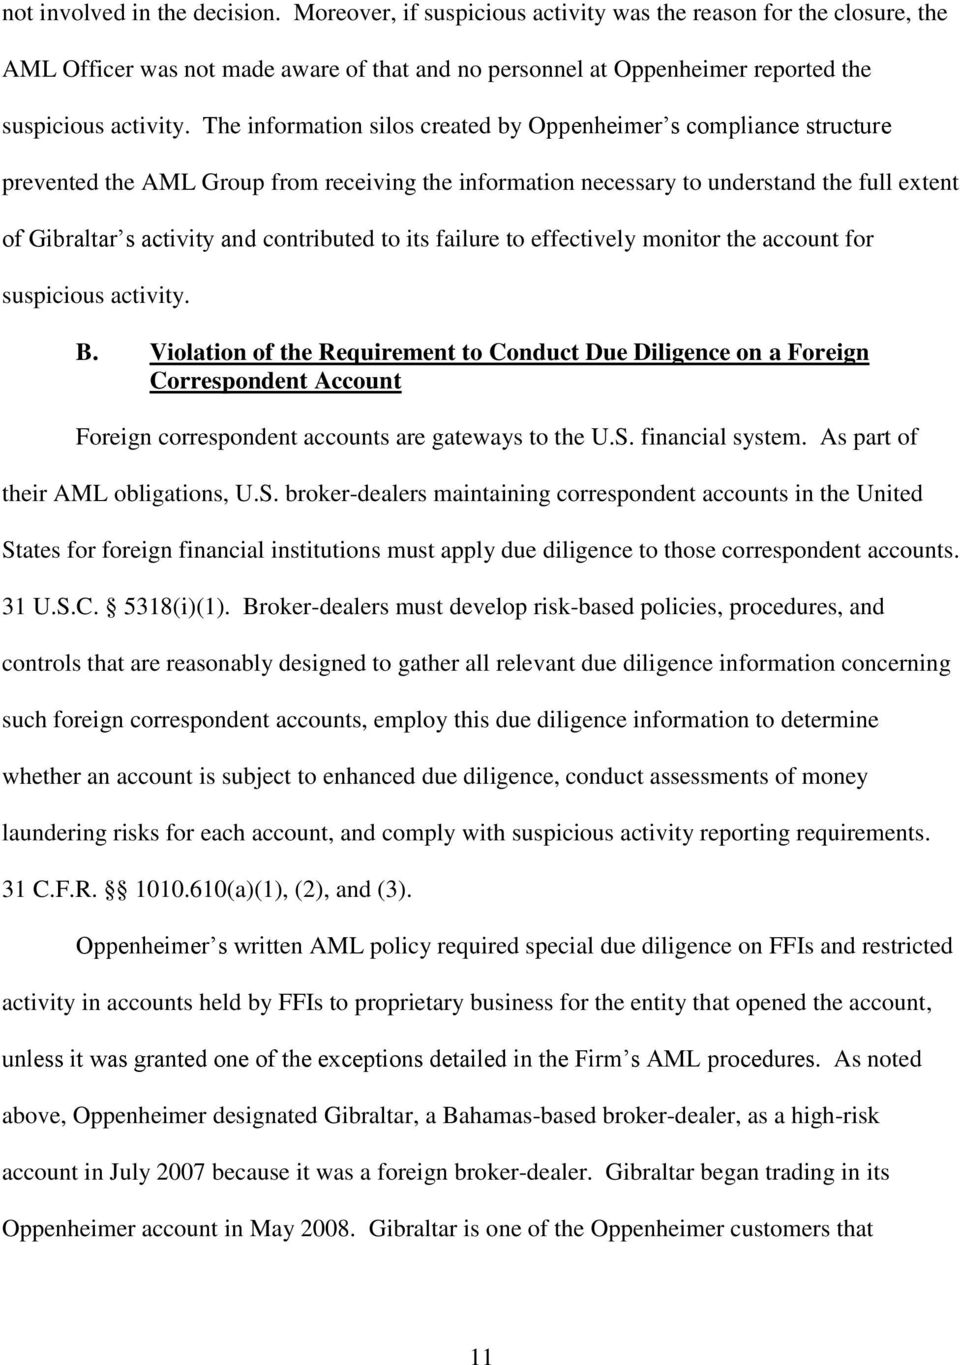 The information silos created by Oppenheimer s compliance structure prevented the AML Group from receiving the information necessary to understand the full extent of Gibraltar s activity and